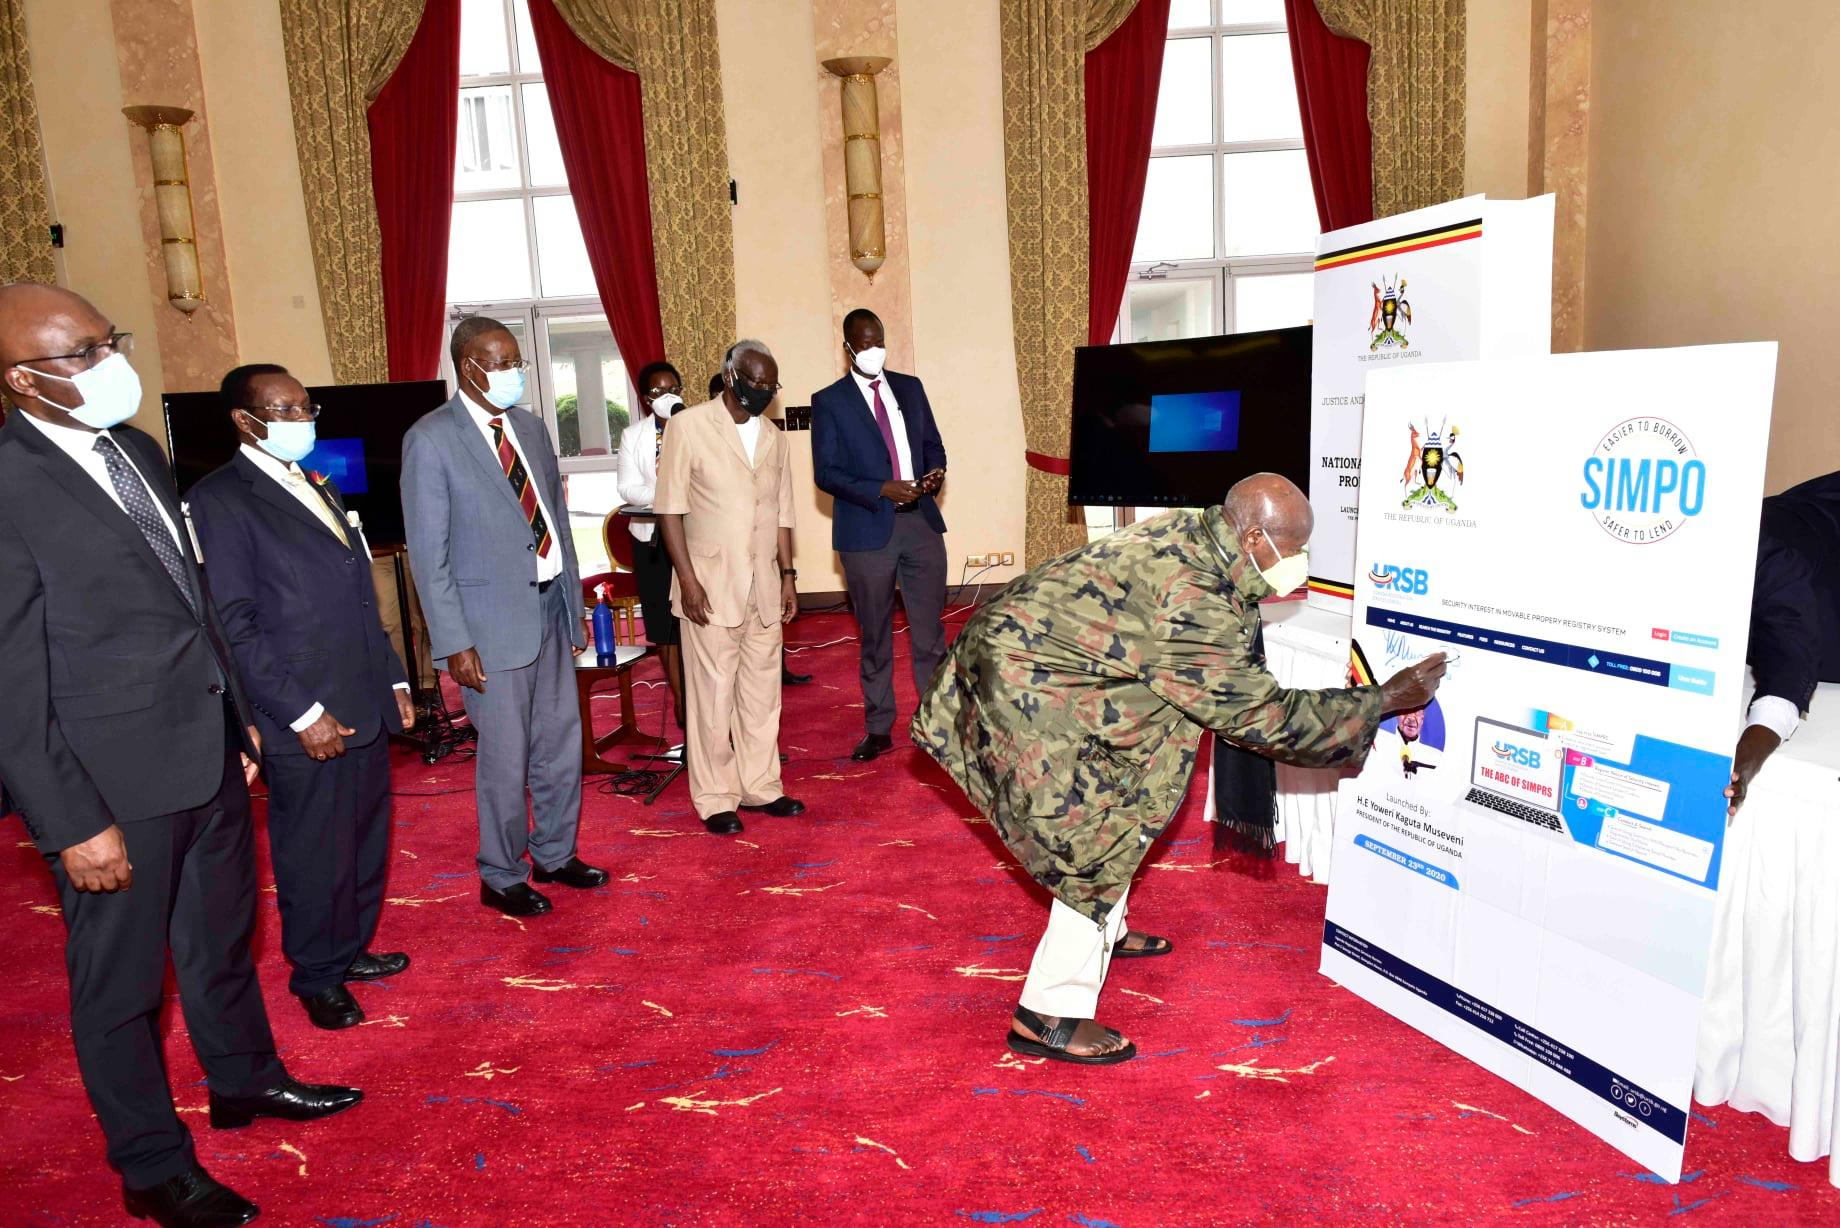 Museveni & URSB launch National Intellectual Property Policy and SIMPO